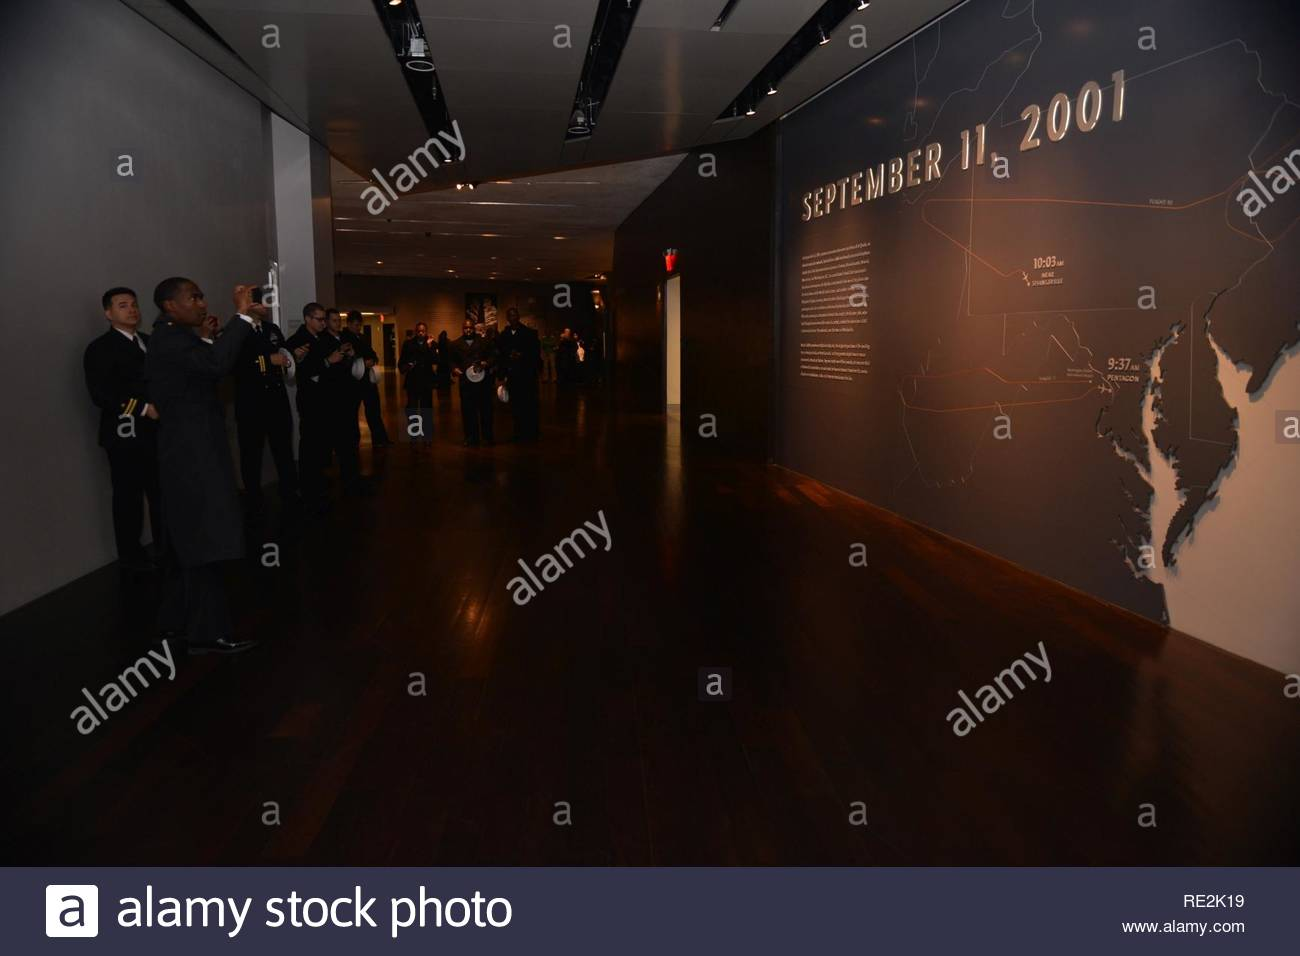 NEW YORK (Nov. 12, 2016) - Sailors attached to amphibious assault ship USS Iwo Jima (LHD 7) view the introductory exhibition at the National 9/11 Memorial & Museum at the World Trade Center. Iwo Jima is participating in Veterans Week New York City 2016 to honor the service of all our nation's veterans. The ship recently returned from the humanitarian assistance mission to Haiti in the aftermath of Hurricane Matthew - Stock Image